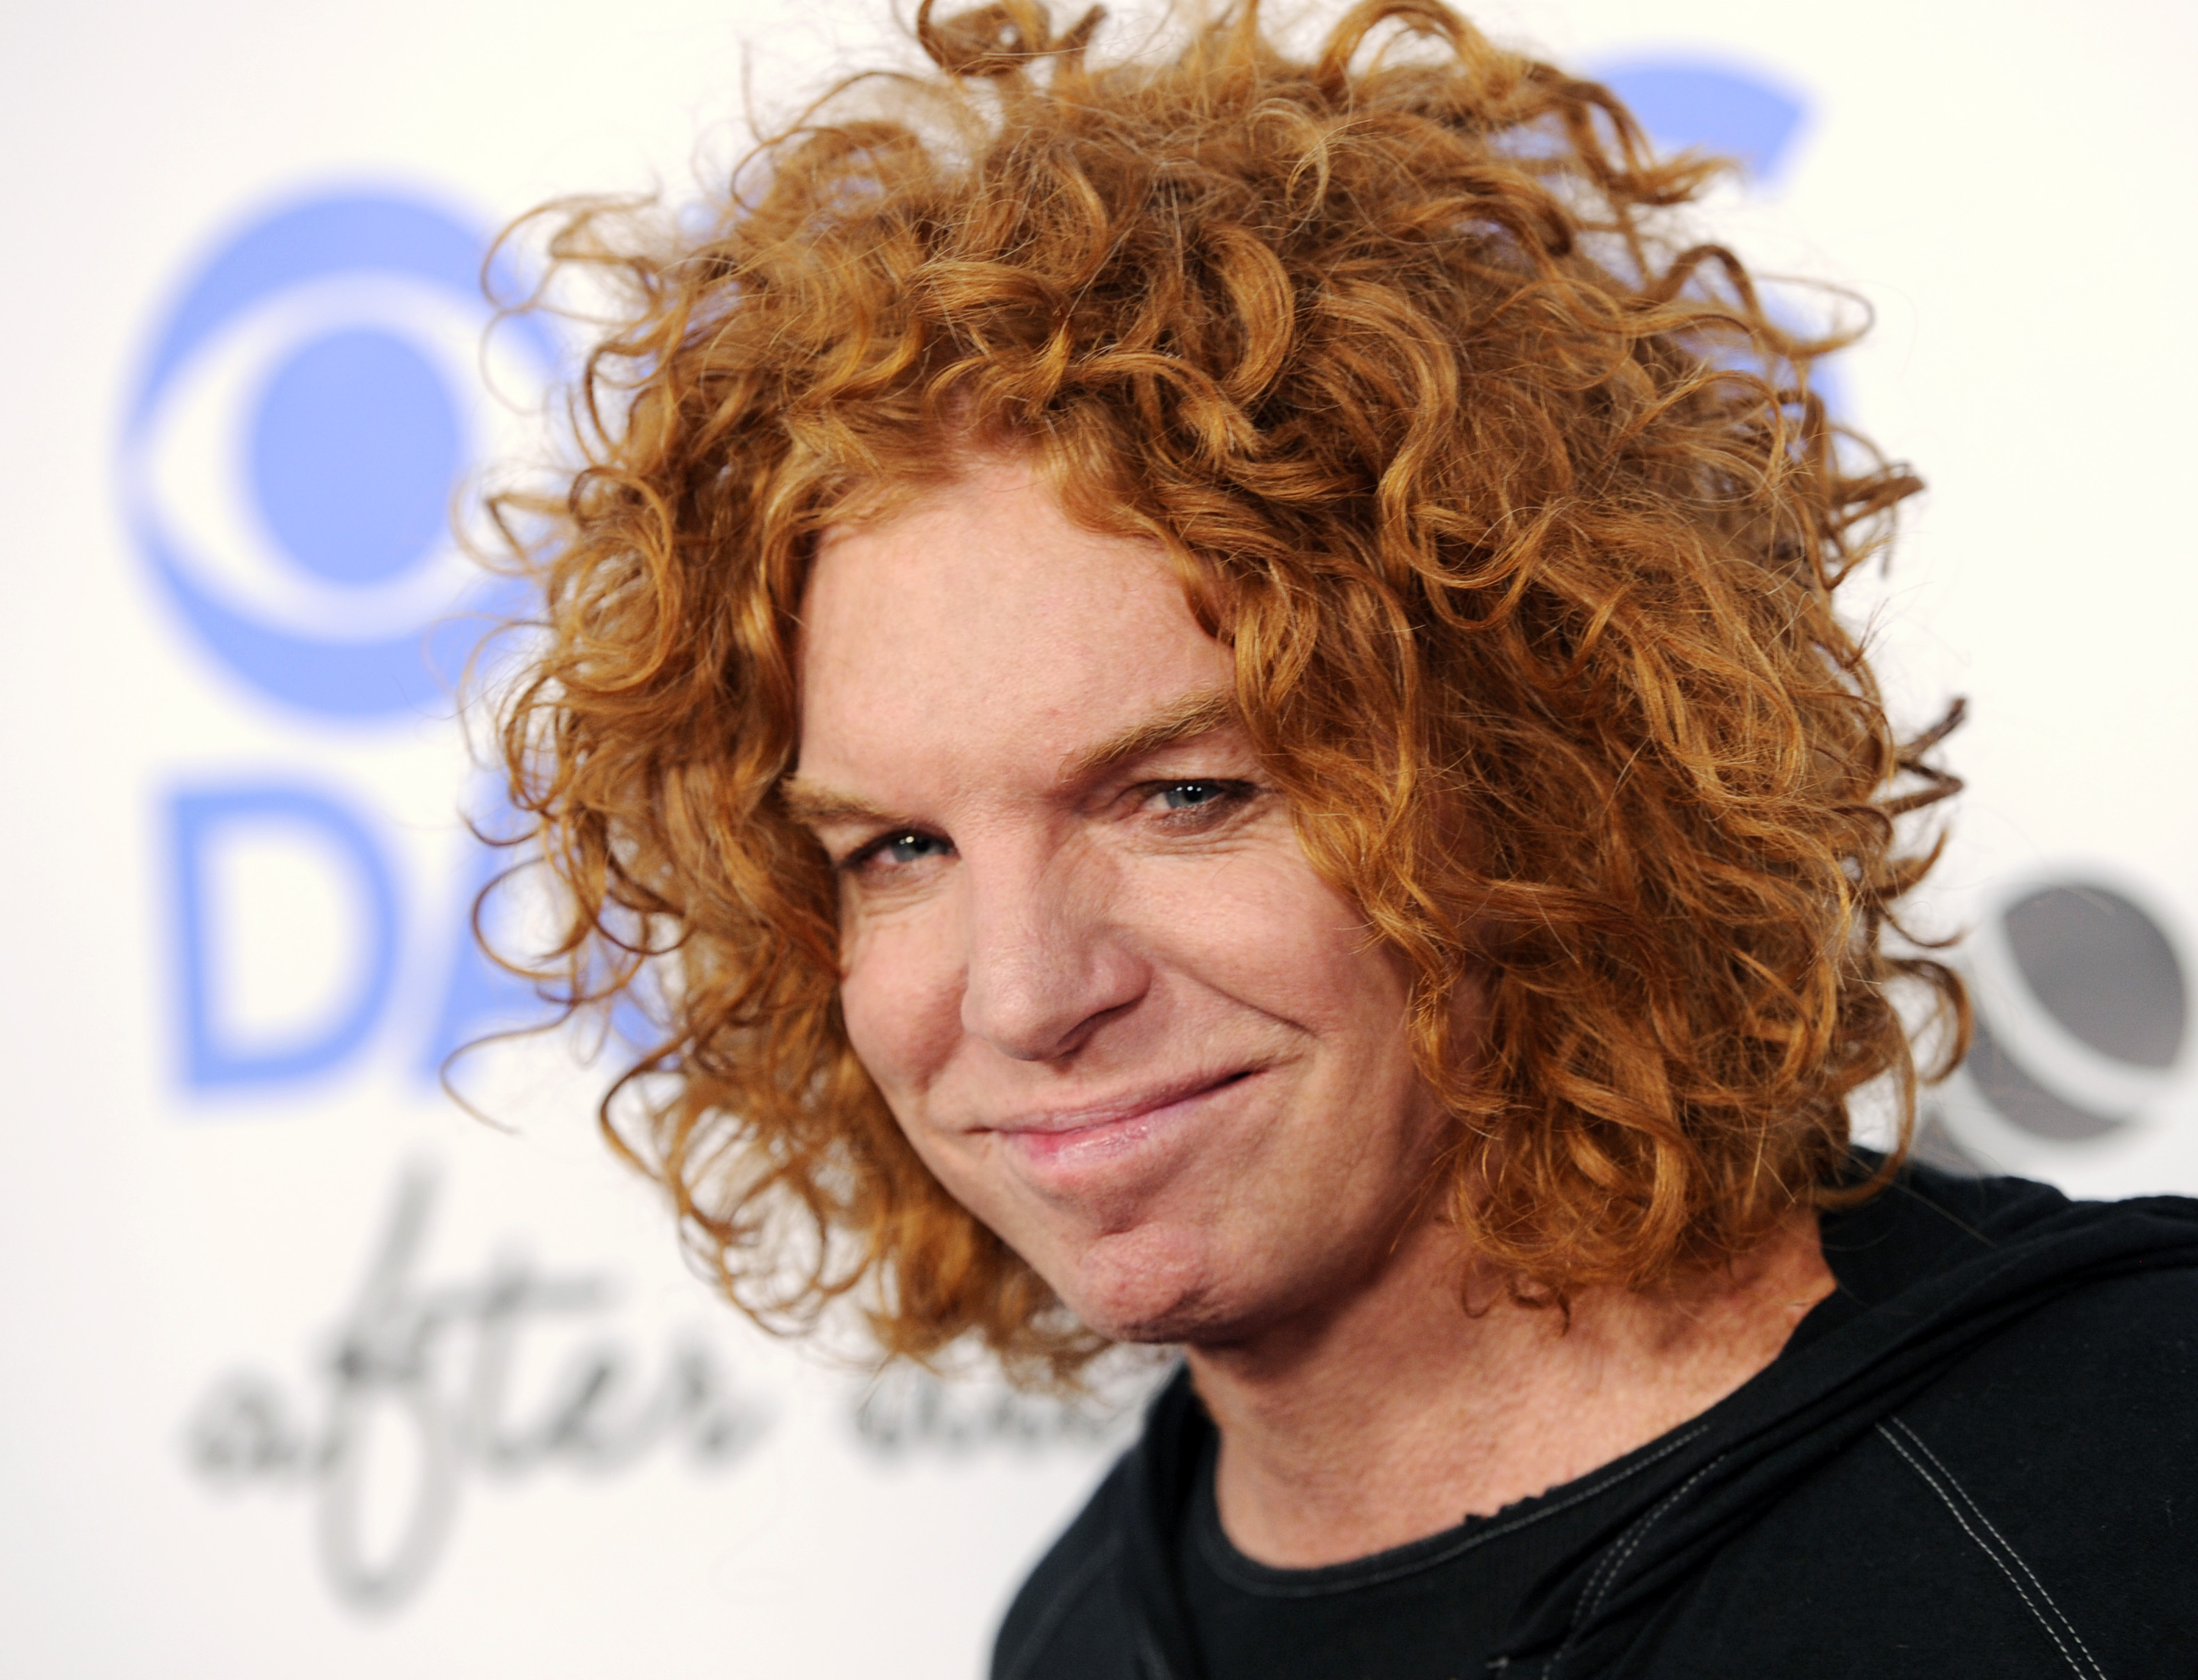 Comedian Carrot Top arrives at the CBS Daytime After Dark comedy event at The Comedy Store on Oct. 8, 2013 in West Hollywood, Calif.